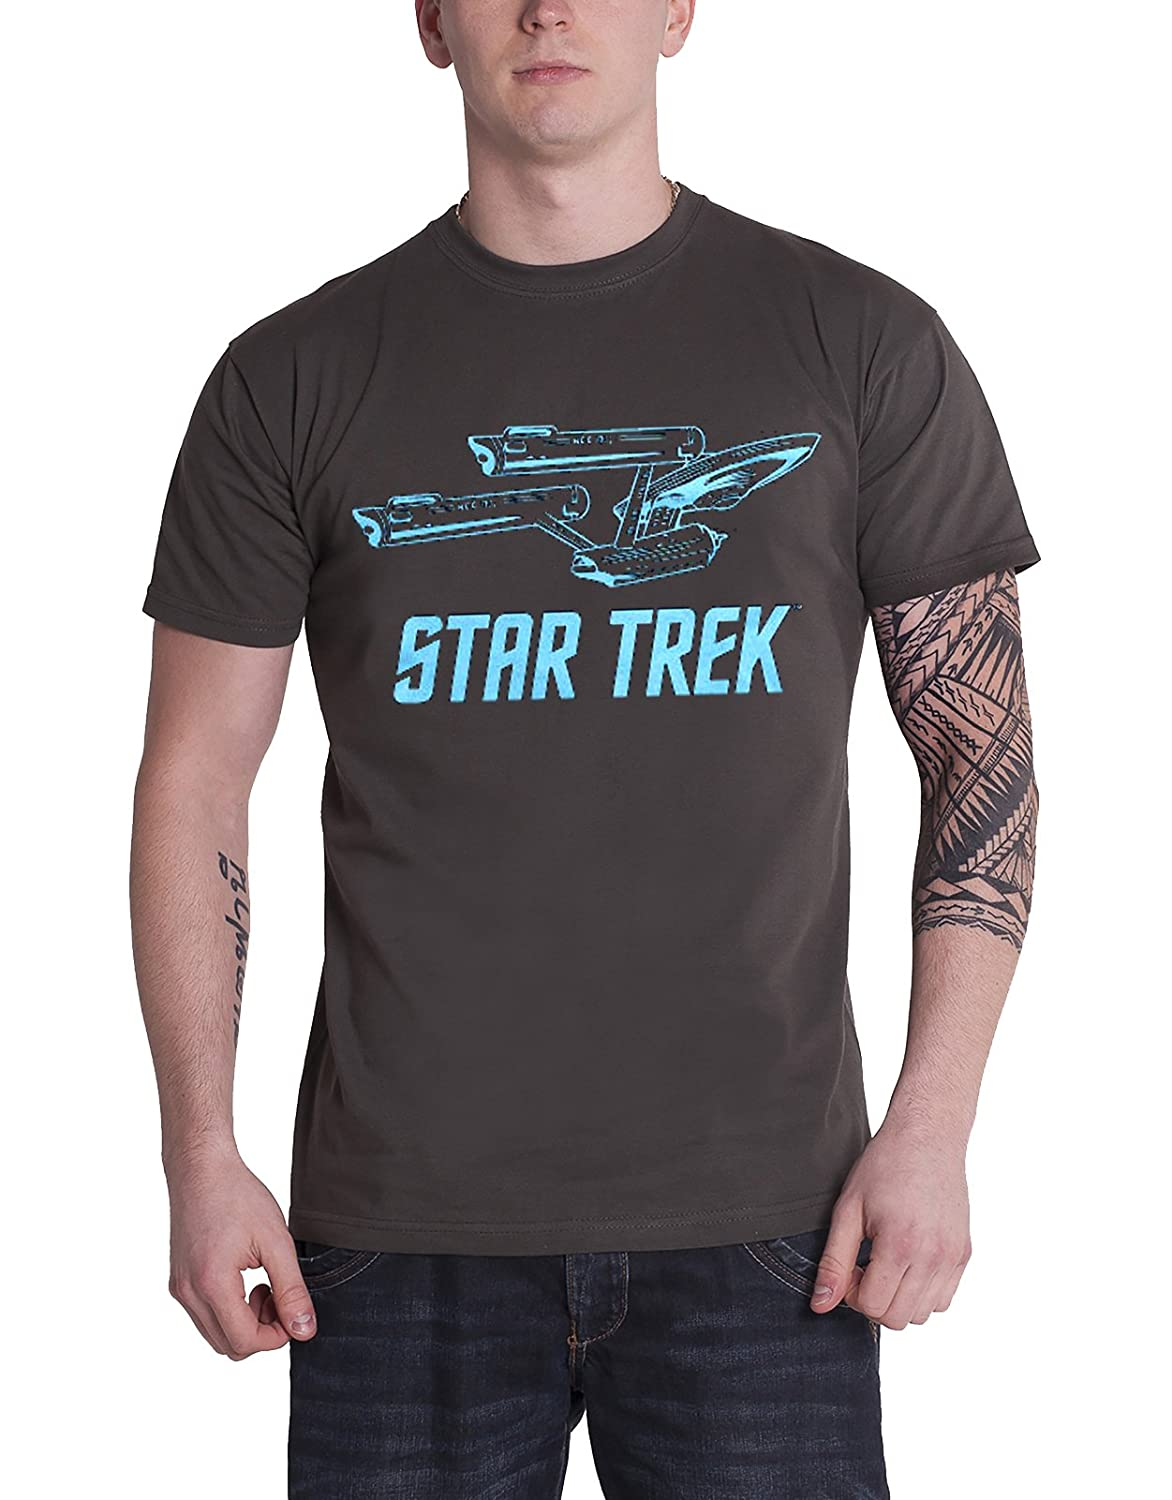 Officially Licensed Merchandise Star Trek / Enterprise Ship T ...